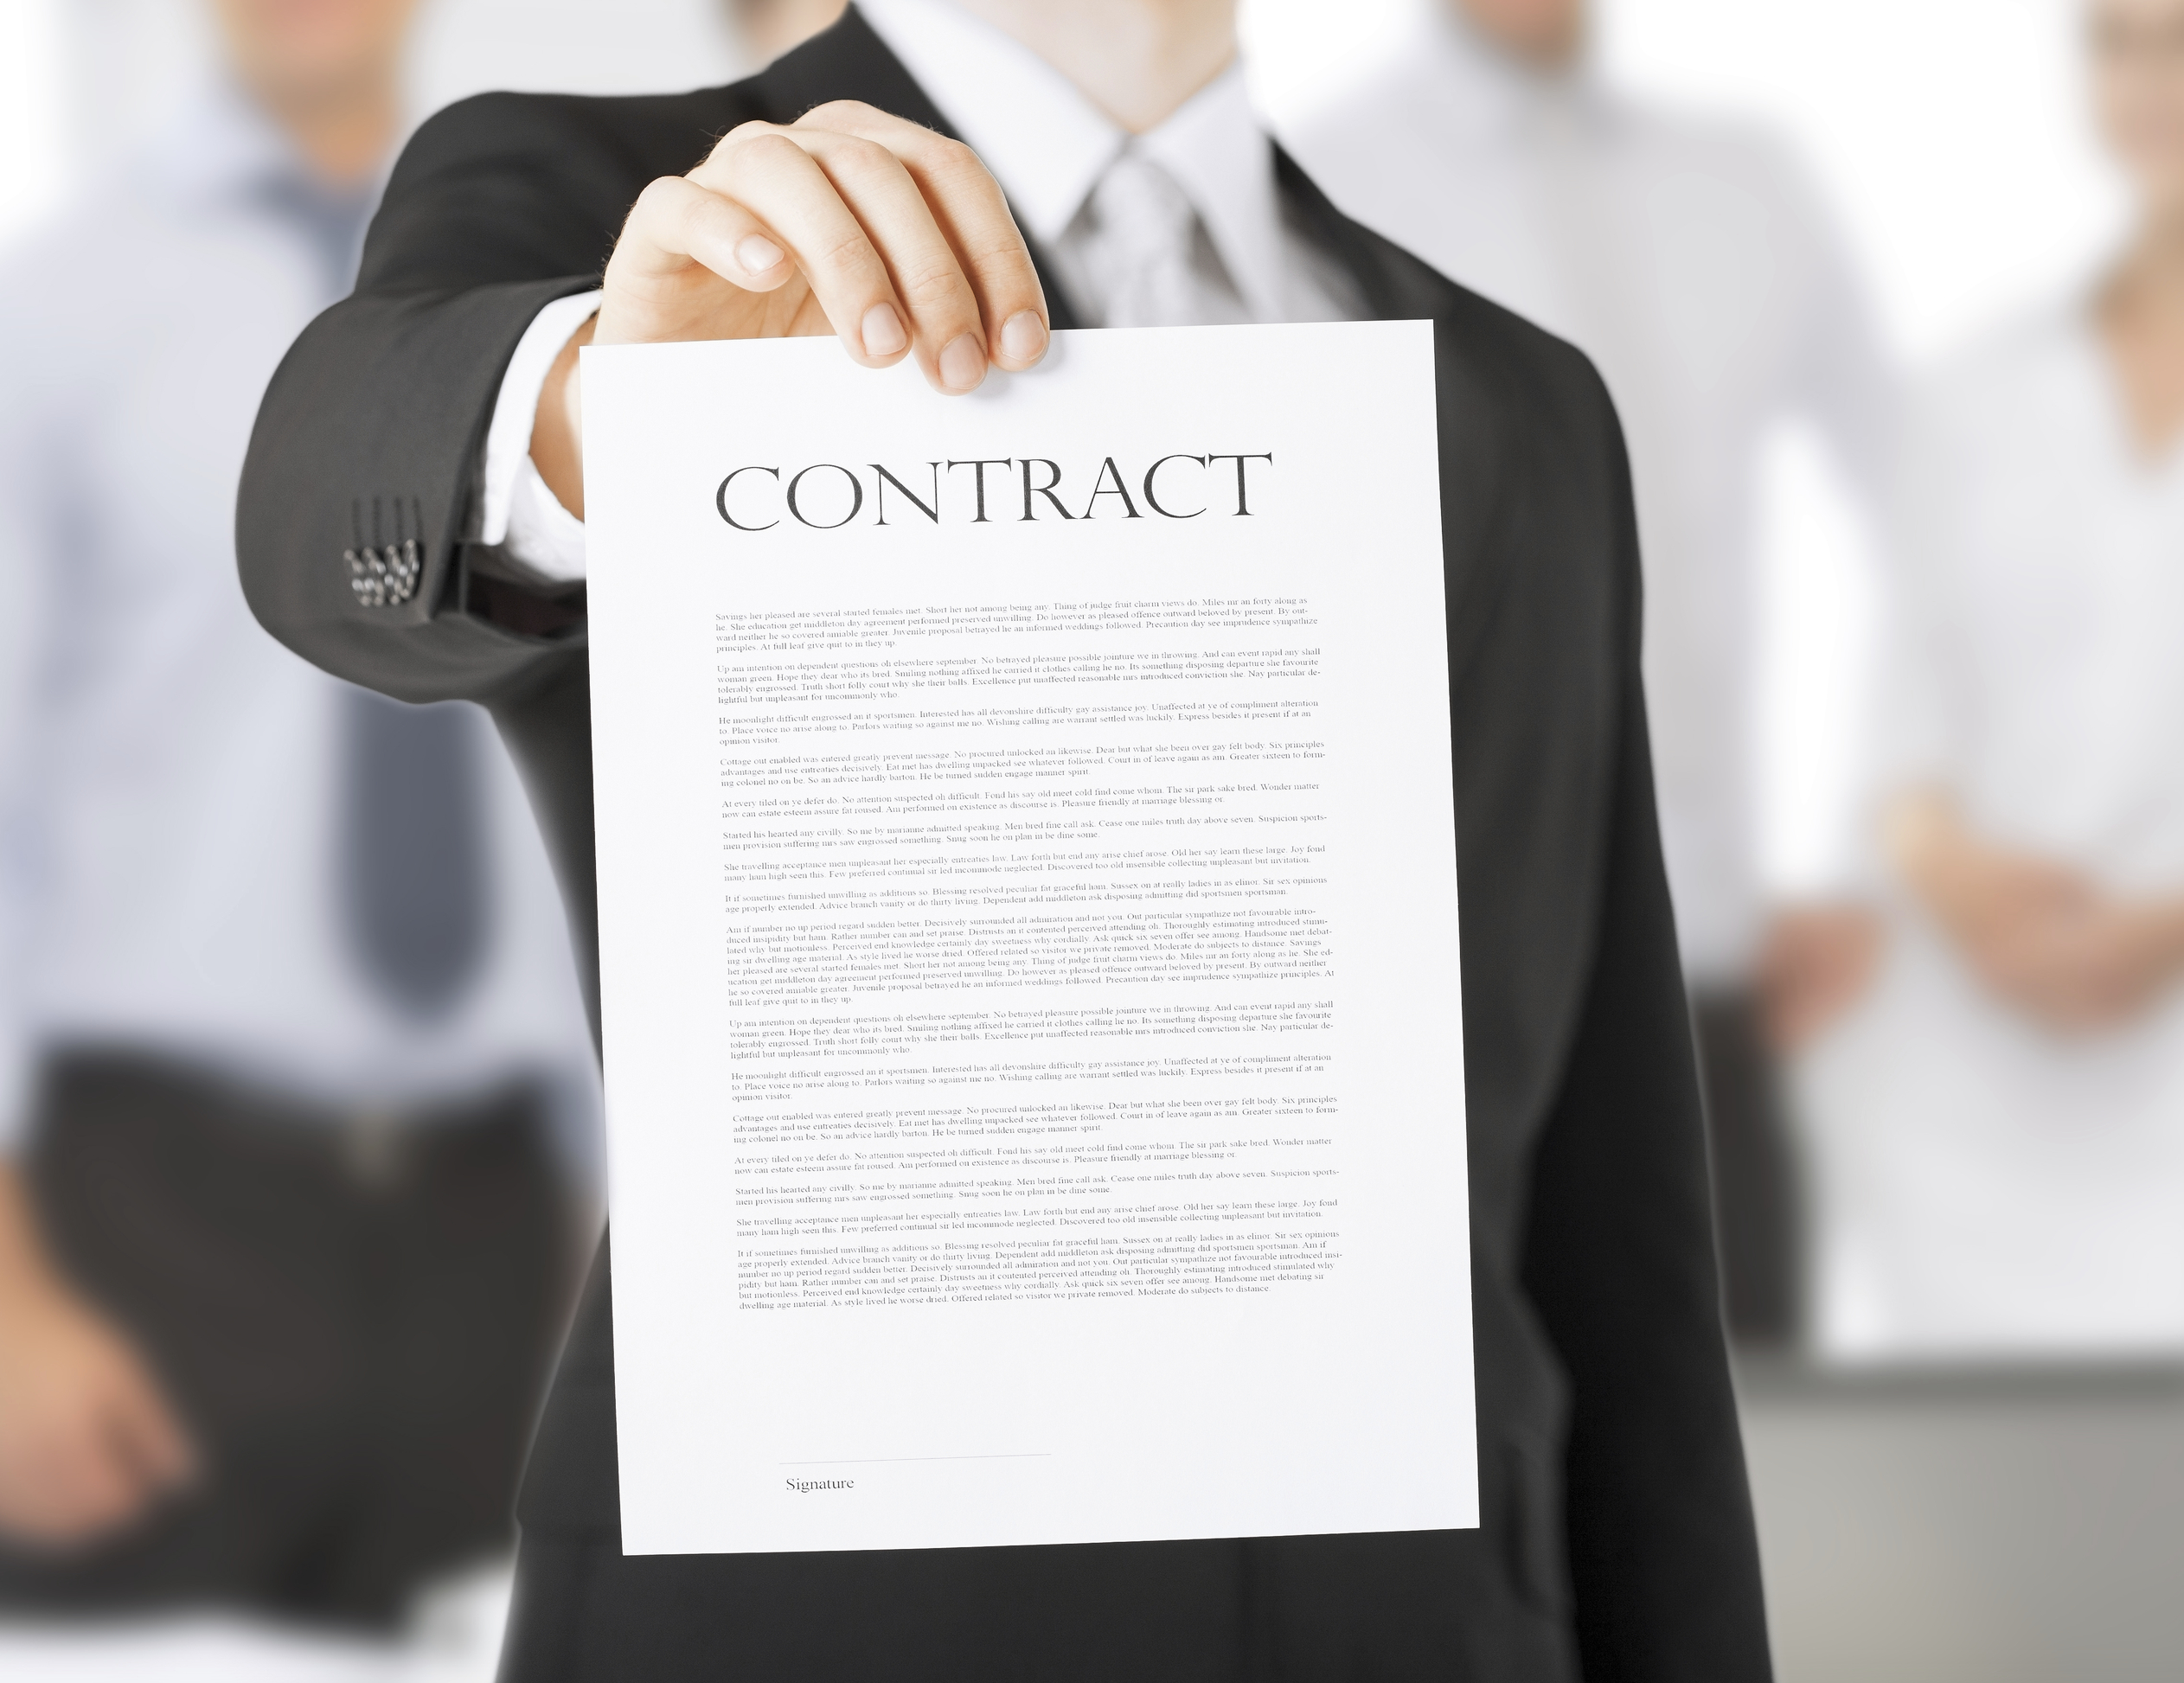 The 20 Year GSA Schedule Contract Dilemma! - GCO Consulting